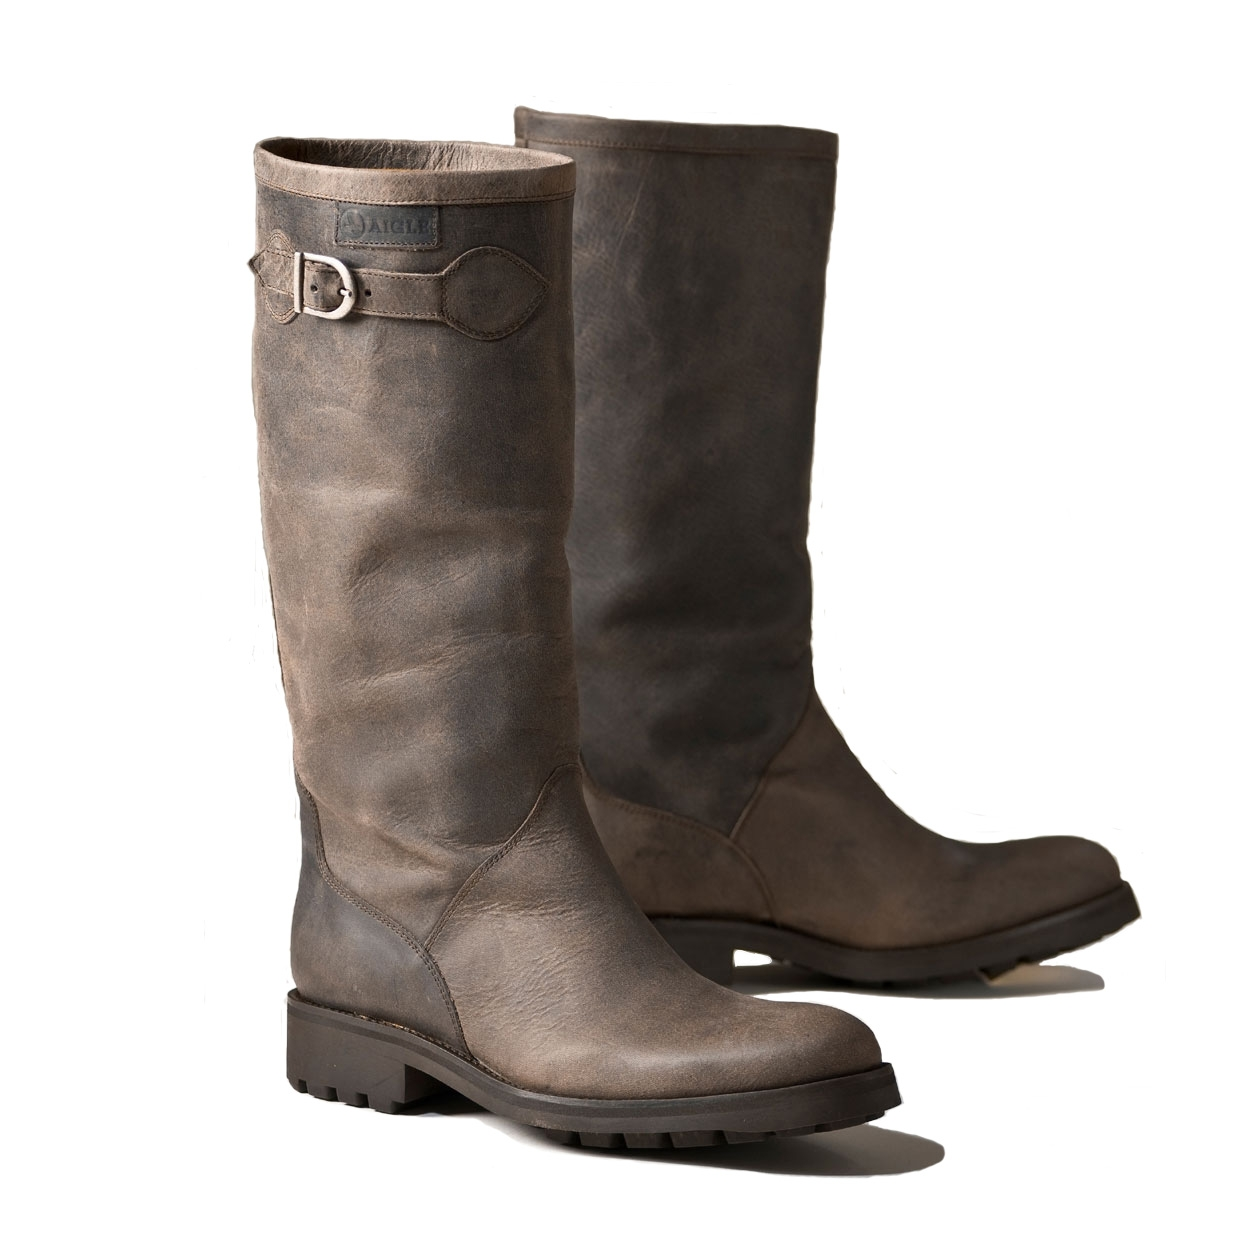 bd285cc8bd45 Image of Aigle Chantebelle Suede Leather Boot (Women s) - Dark Brown